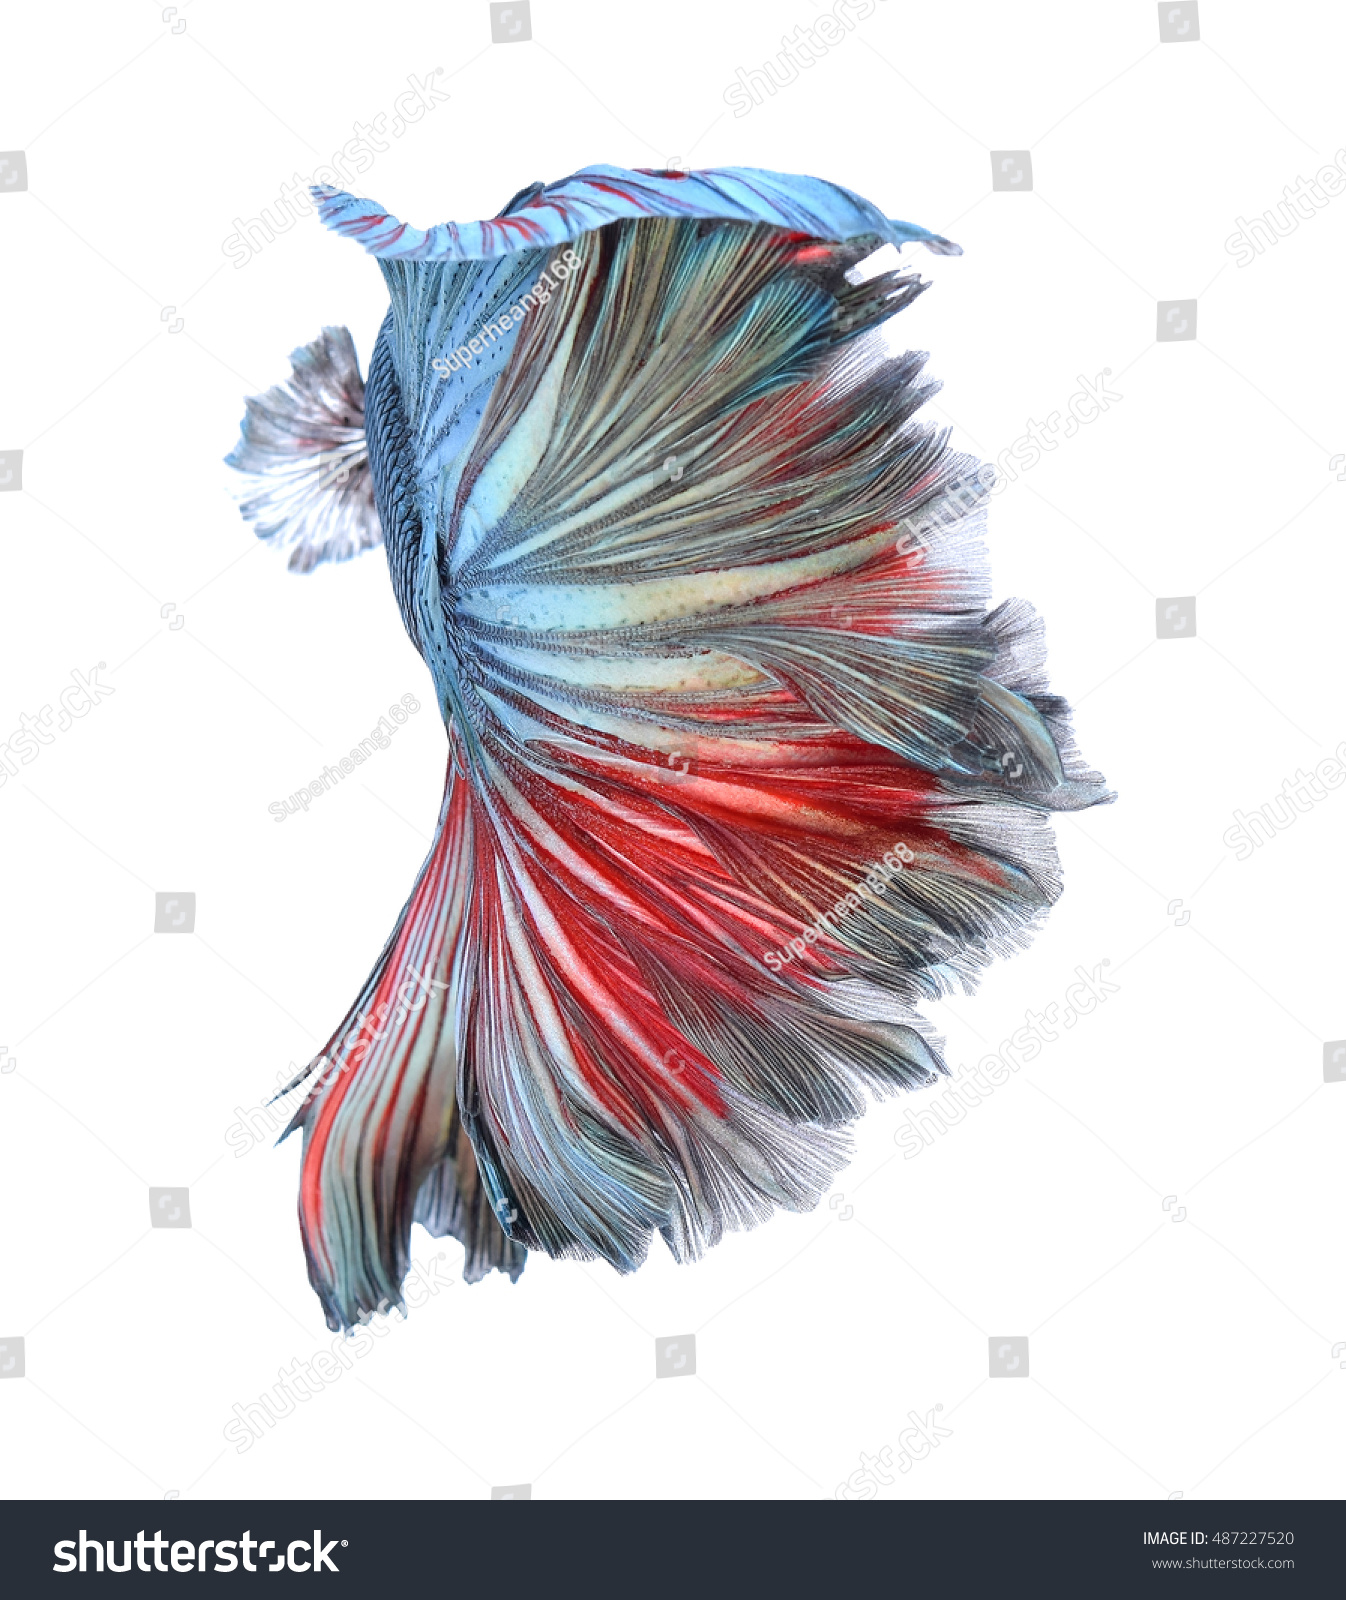 Royalty-free Beauty colorful Betta fish tail of… #487227520 Stock ...